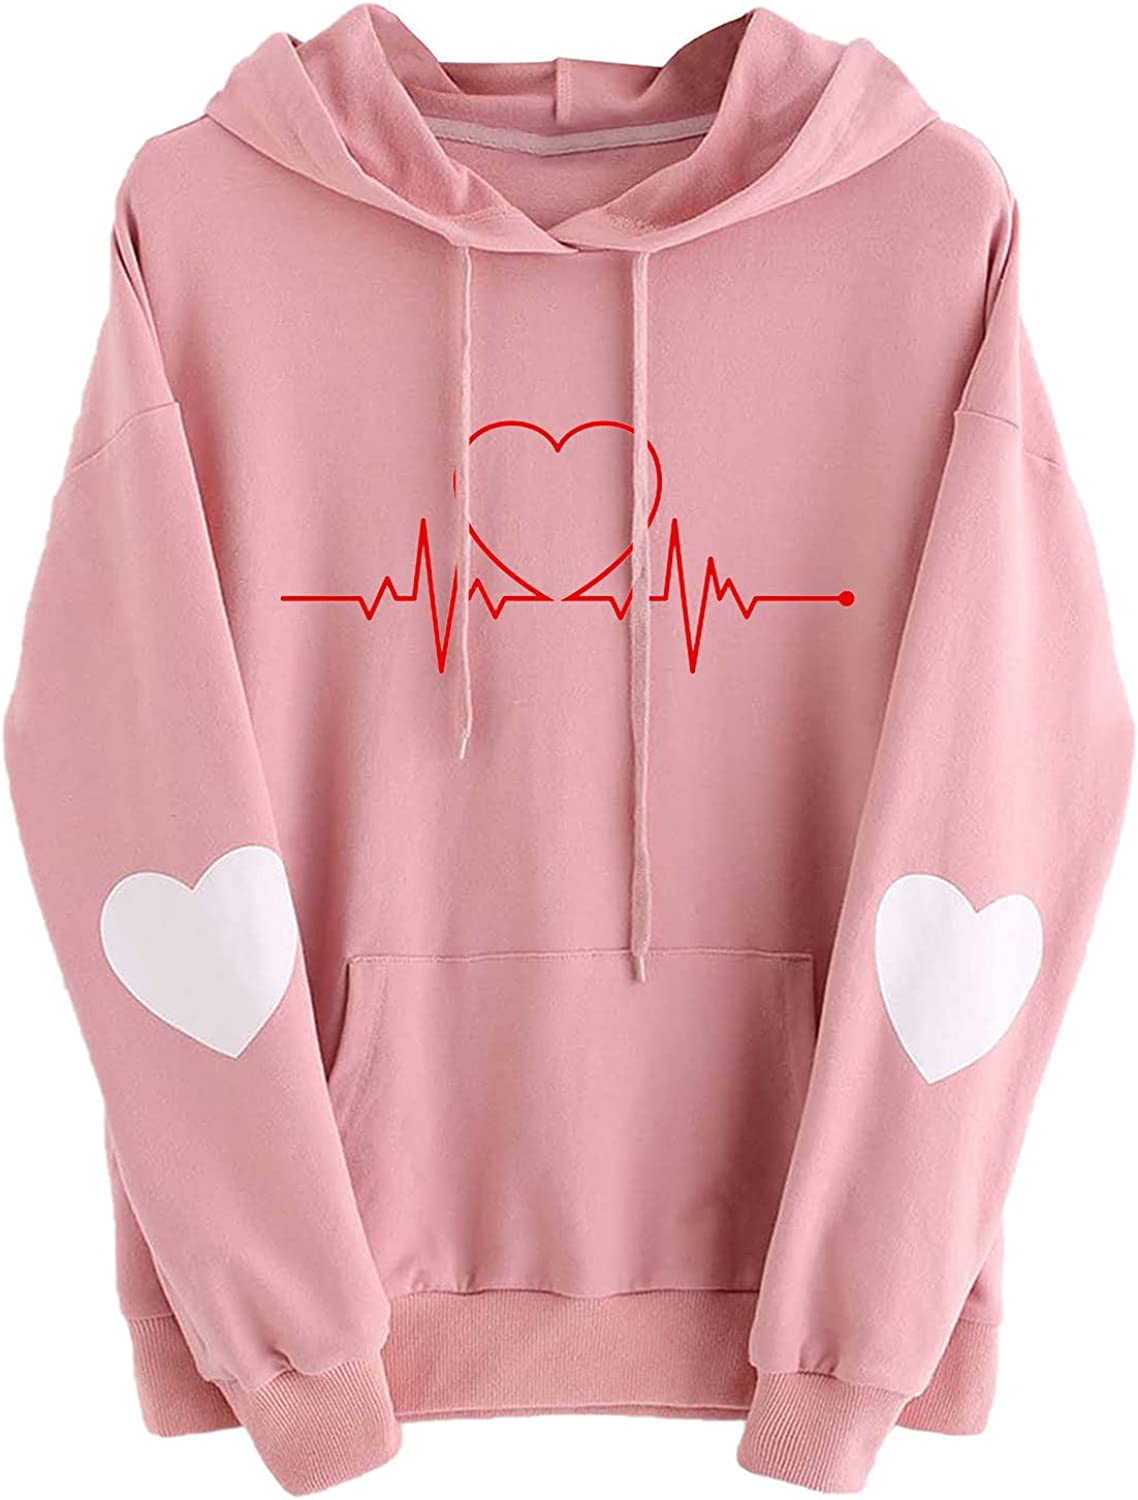 Cute Tops for Women Fall Soft Simple Fashion Soli Fresno Mall Graphics Limited time sale Heart